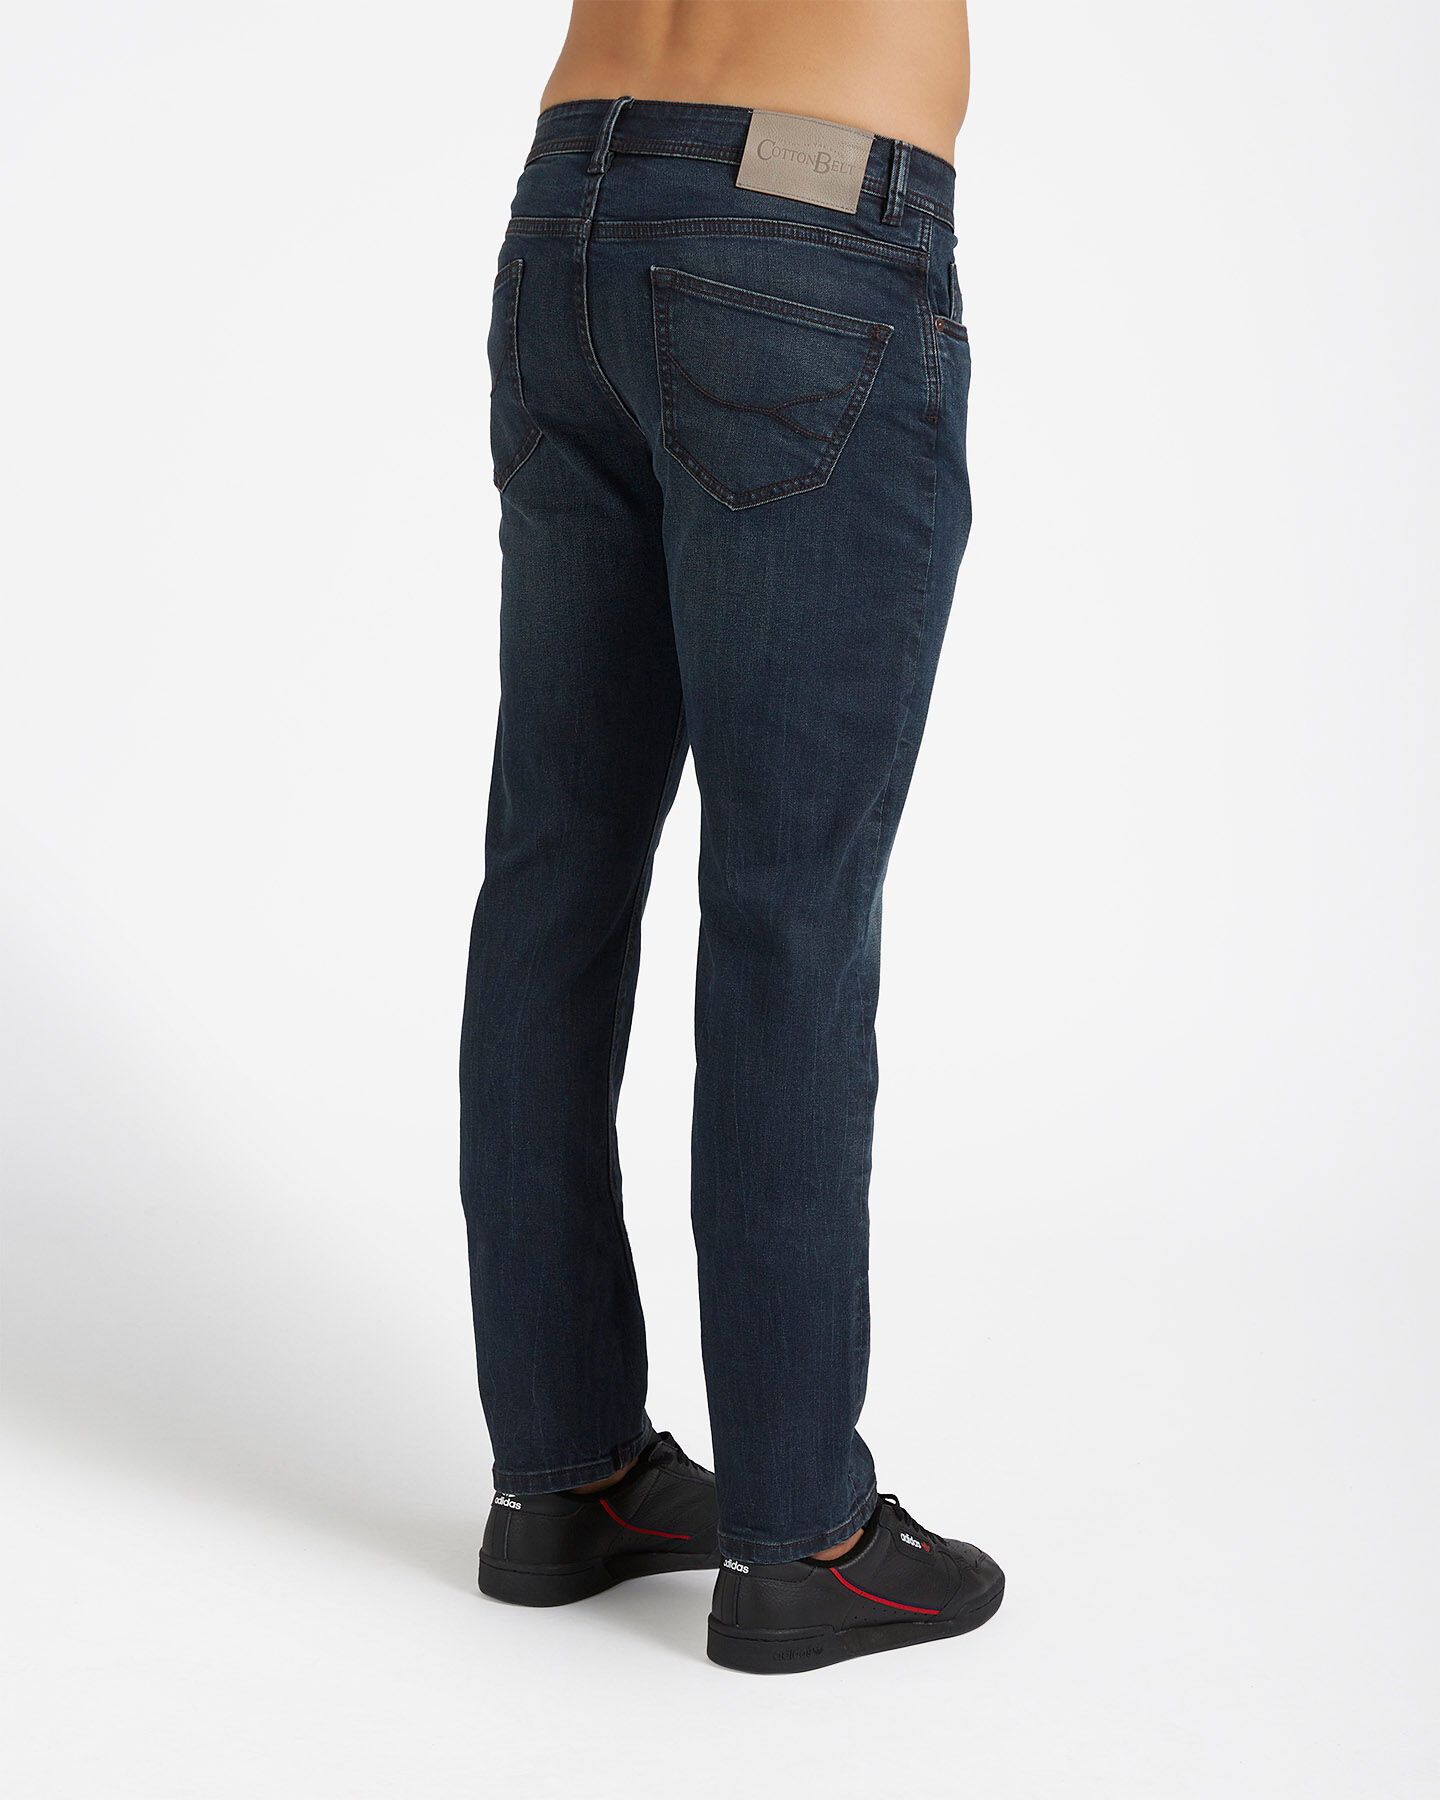 Jeans COTTON BELT 5TS MODERN M S4076653 scatto 1